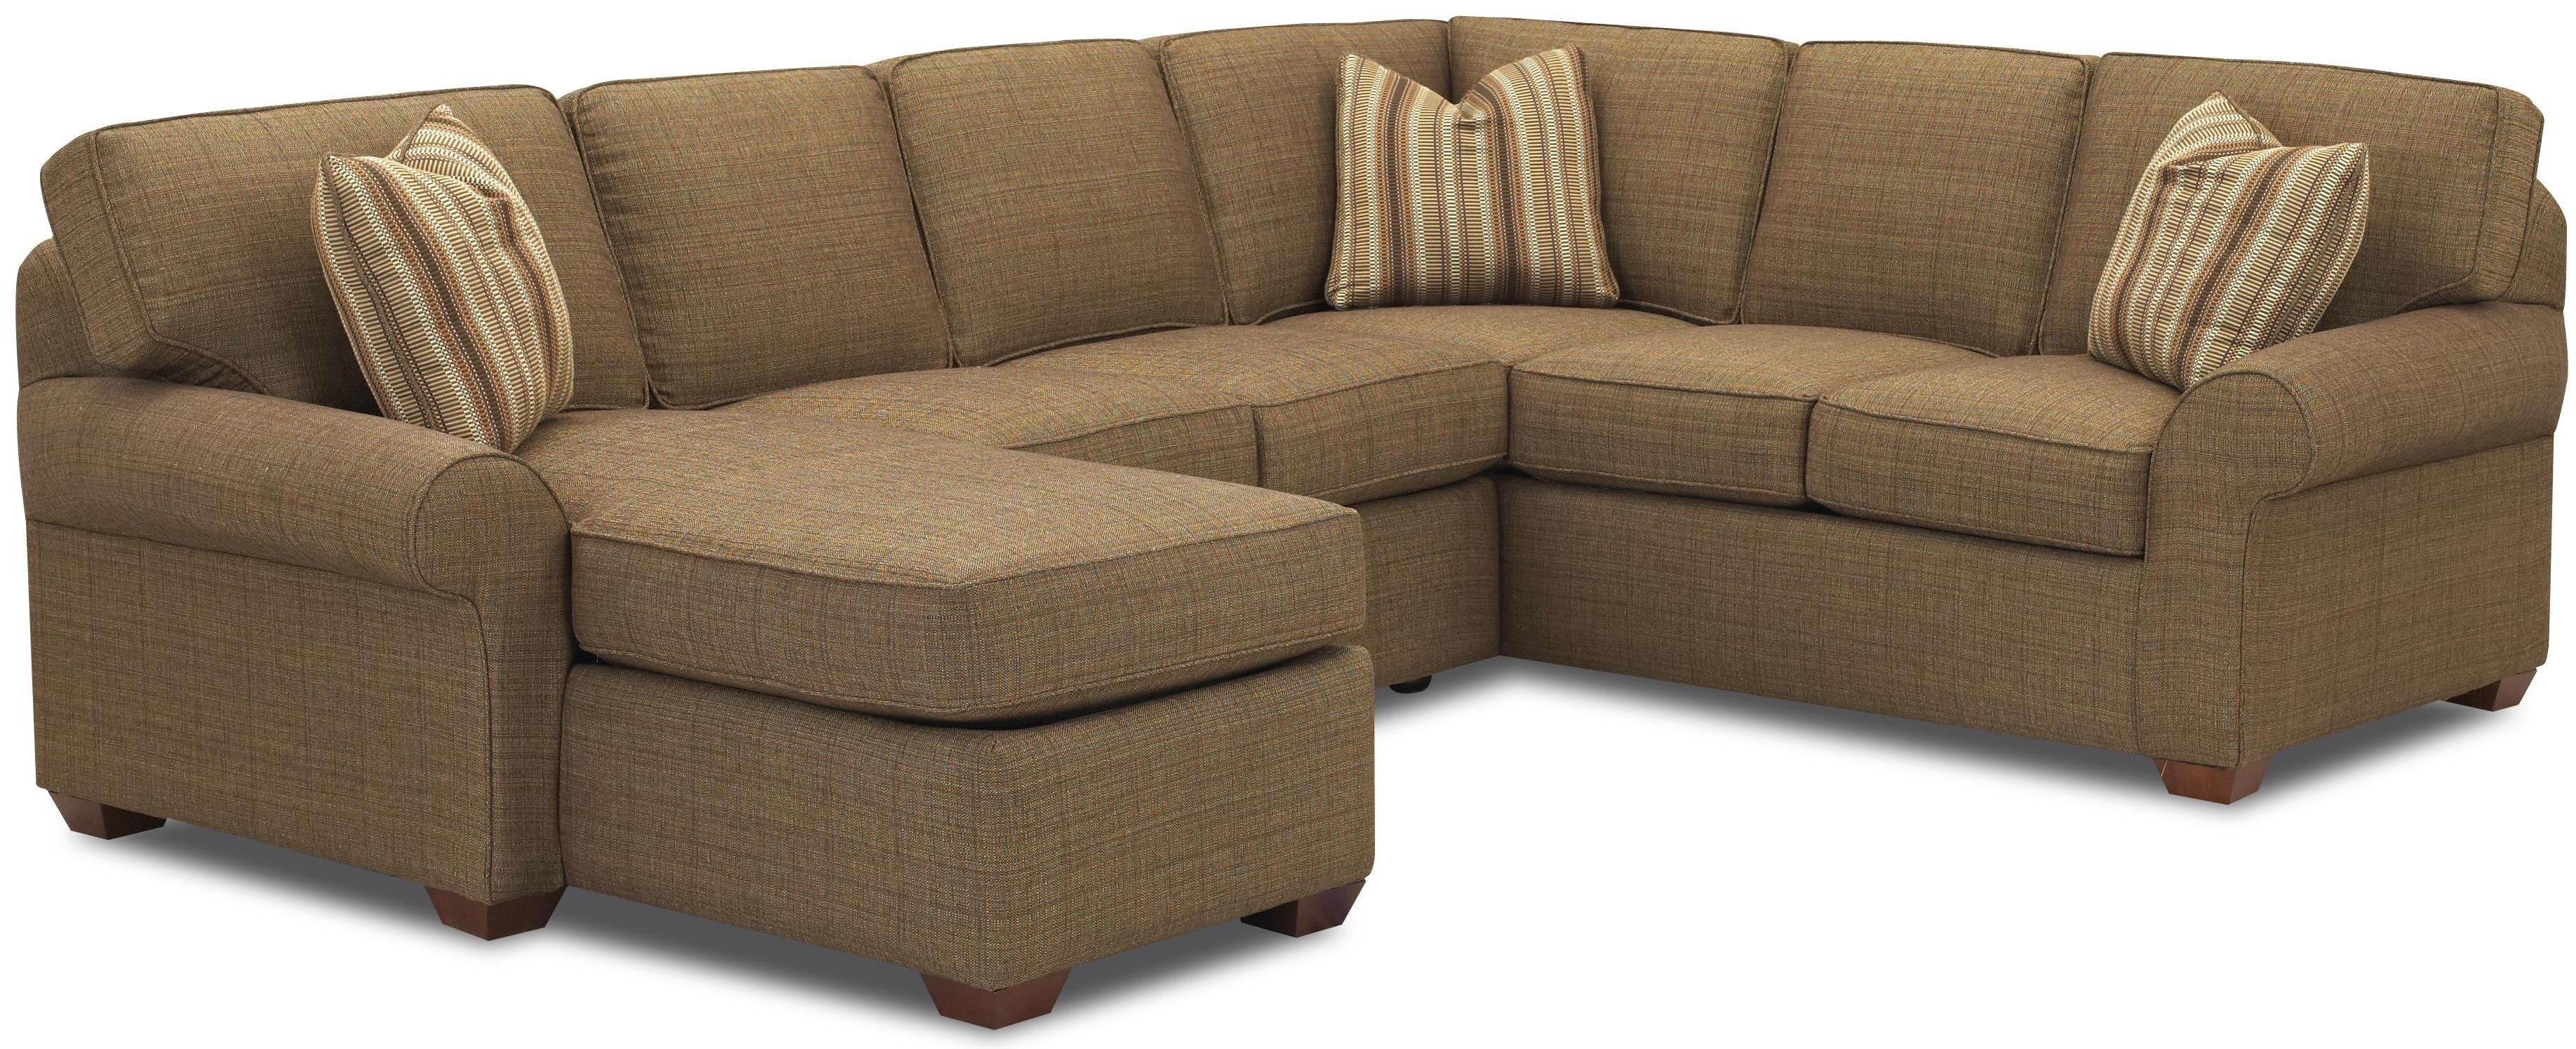 Sectional Sofa Group With Right Chaise Loungeklaussner (View 11 of 20)